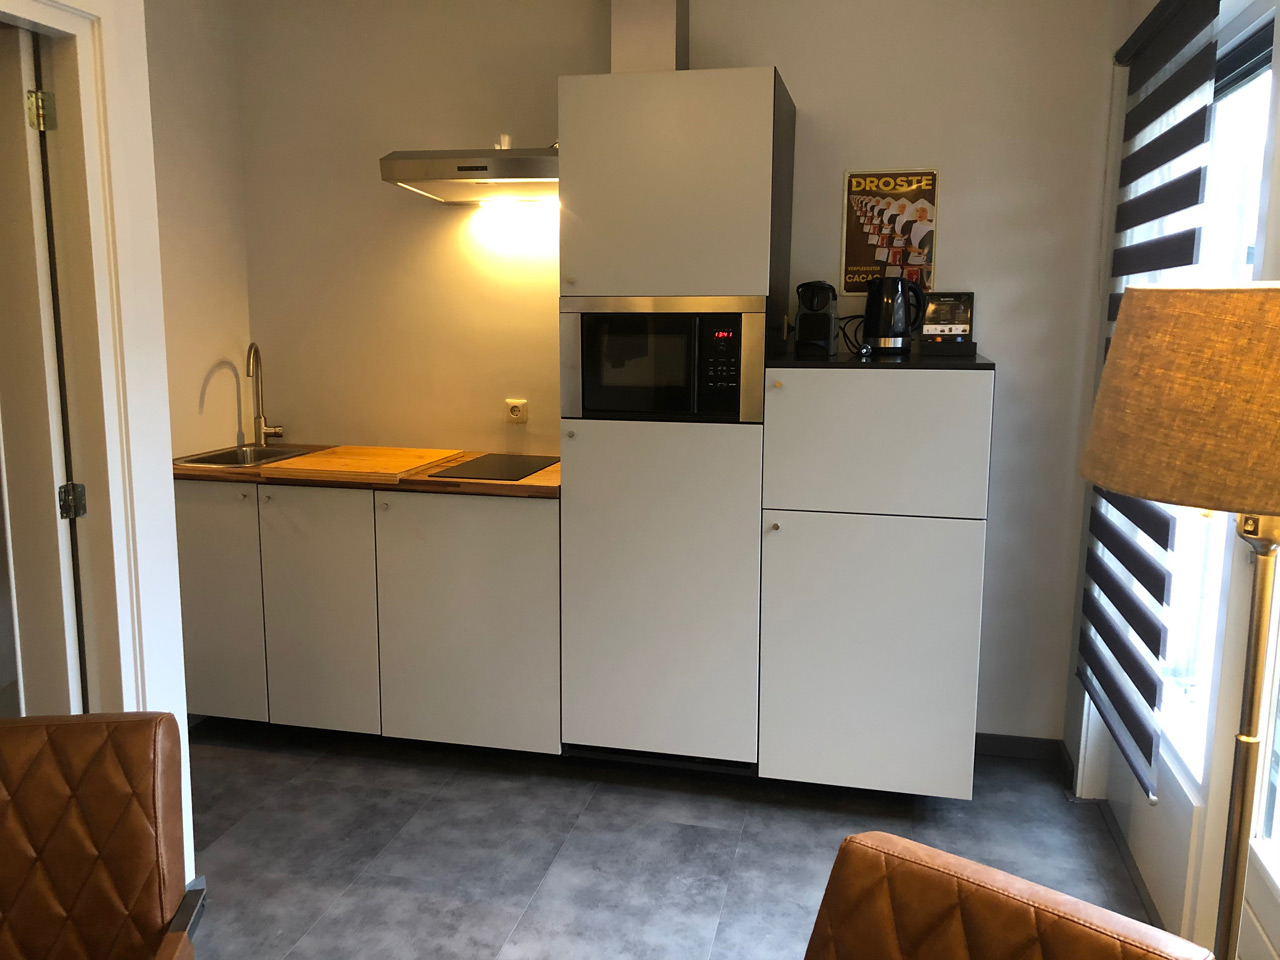 Keuken-kitchen-kuche-Droste-Relaxed-Apartments1